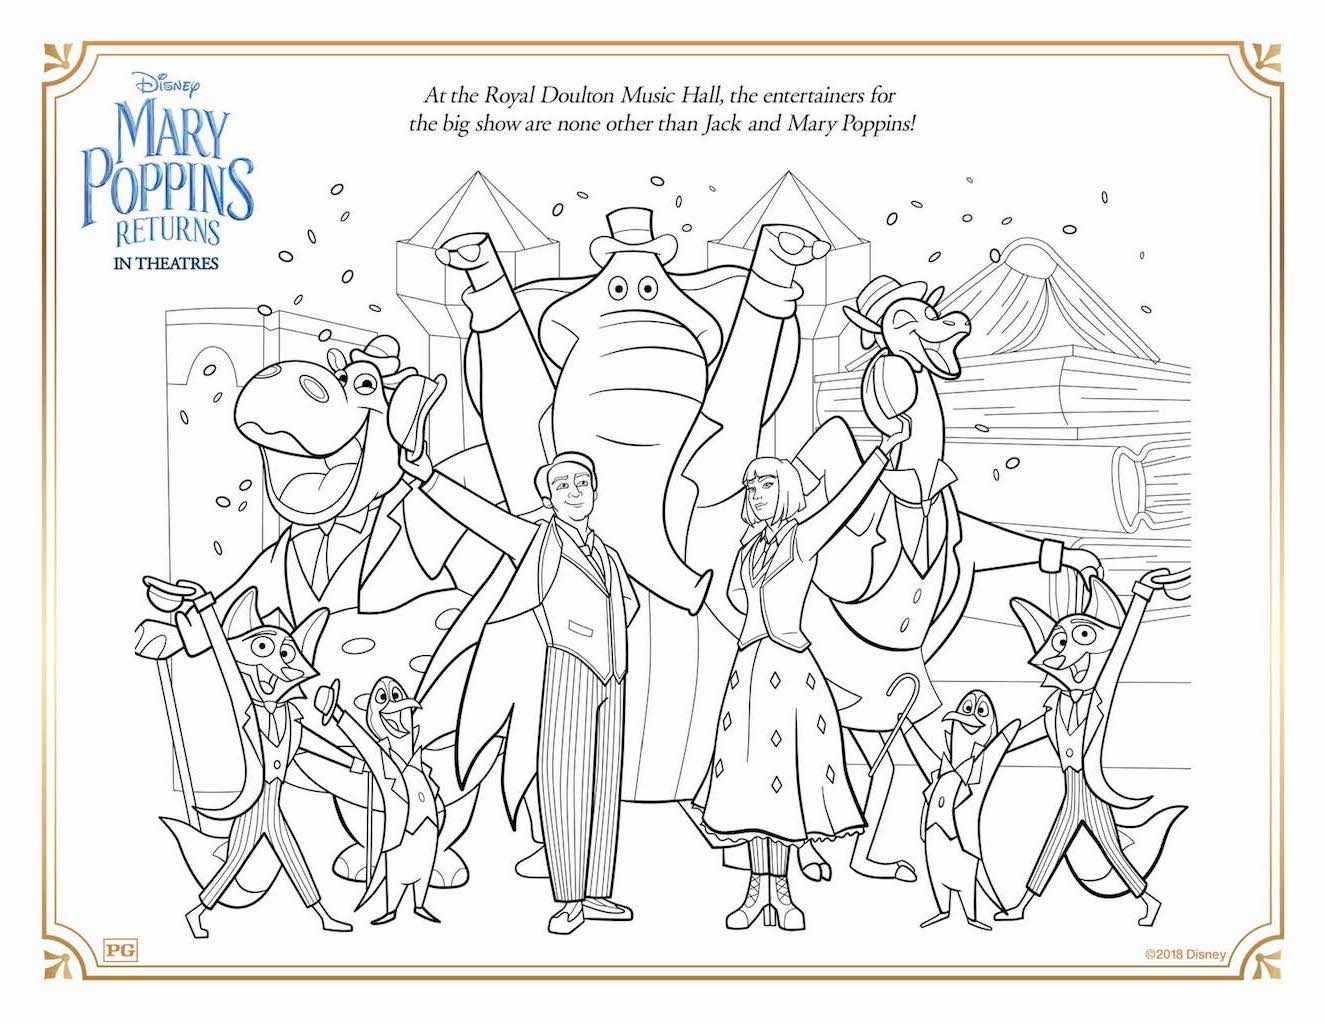 Free Printable Mary Poppins Returns Coloring Activity Sheets Coloring Pages Cartoon Coloring Pages Mary Poppins [ 1024 x 1325 Pixel ]